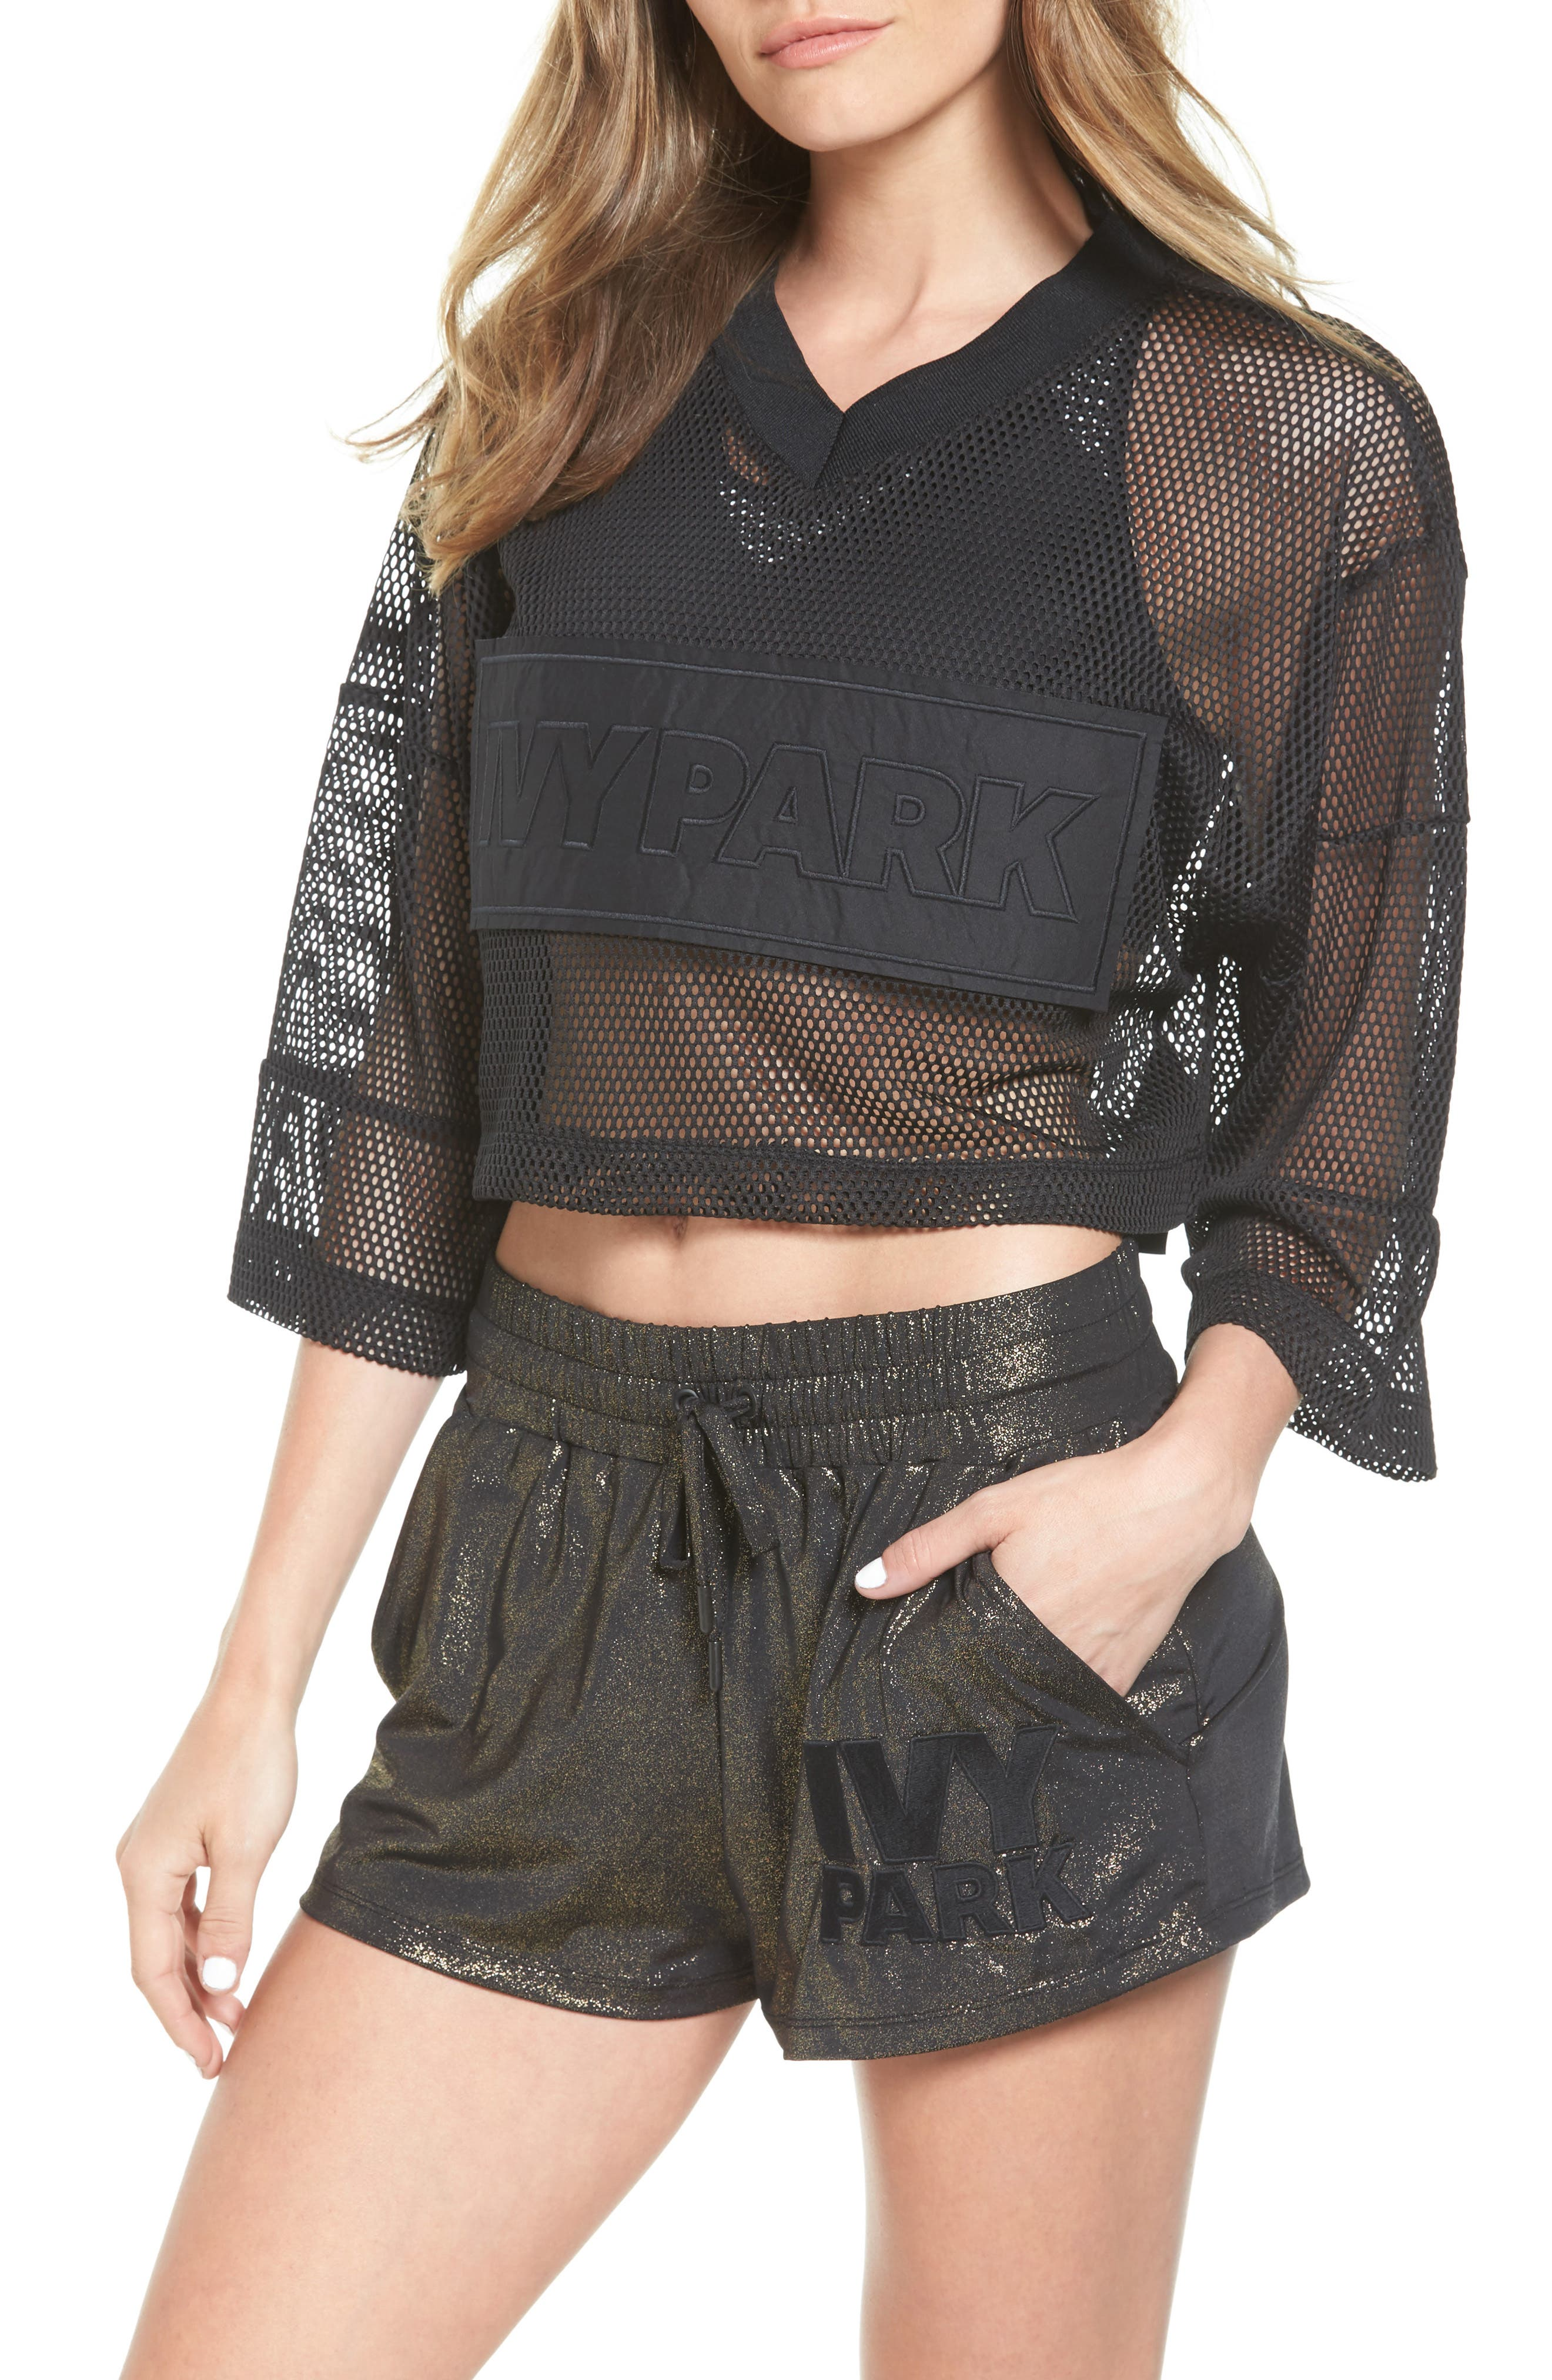 IVY PARK® Satin & Mesh Crop Top